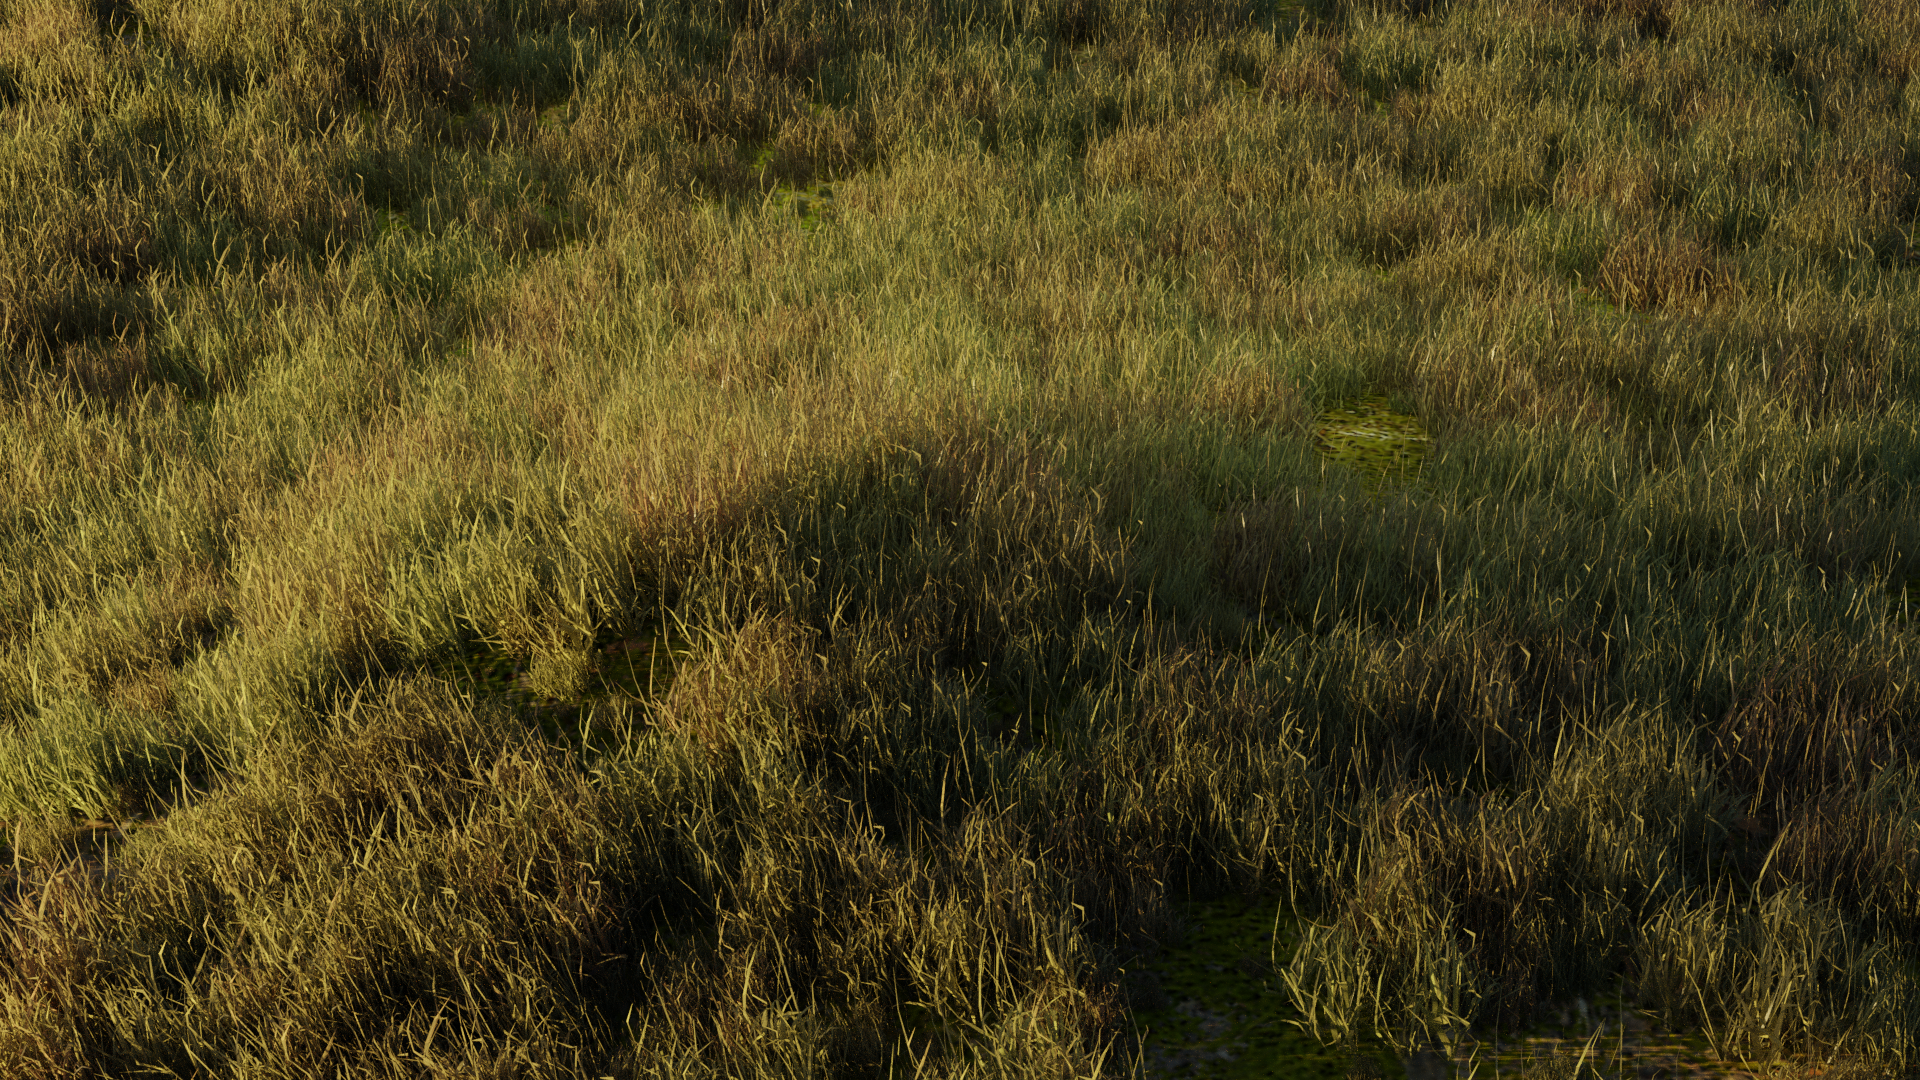 Simple Realistic Grass preview image 1